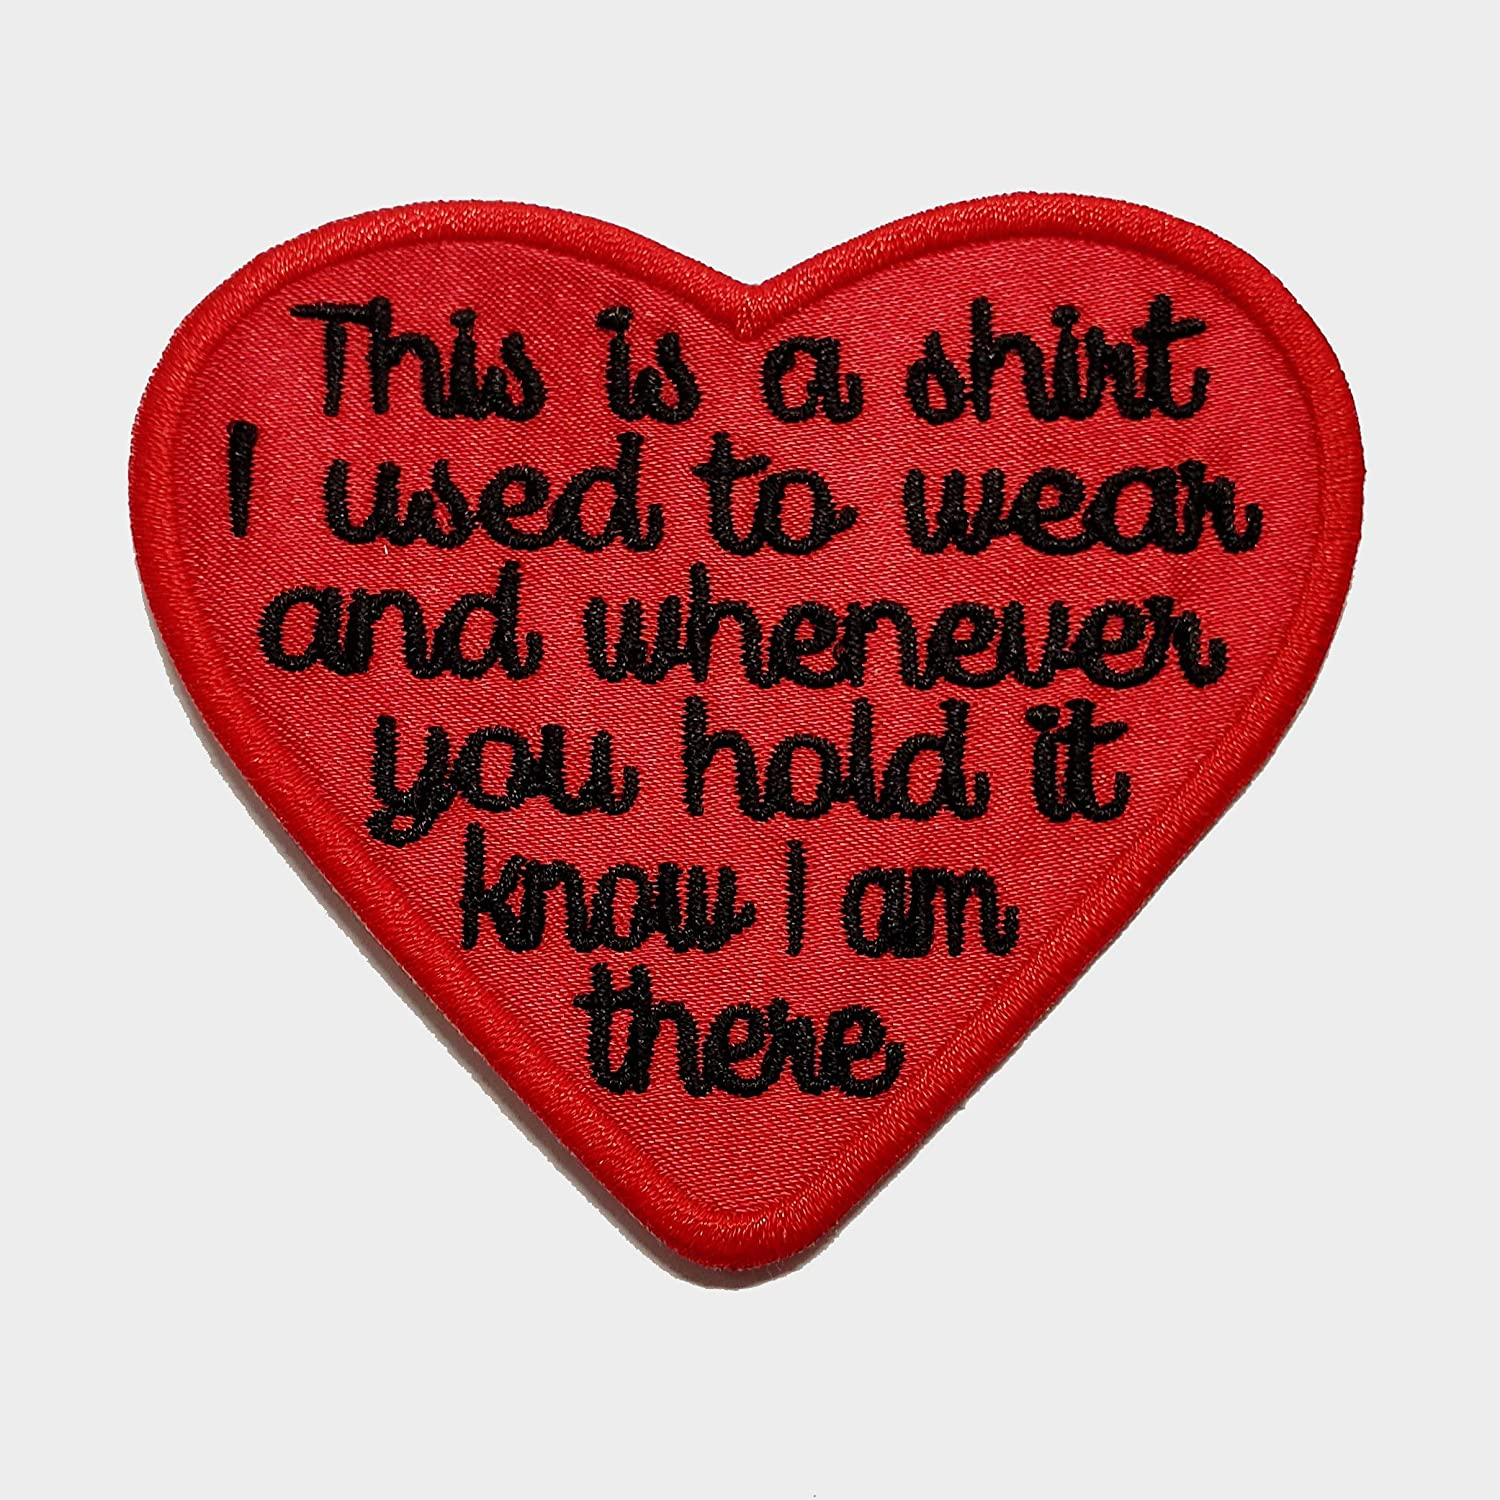 Memory Patch This is a Cheap mail order shopping shirt I wear Iron Heart Red used Milwaukee Mall to Satin